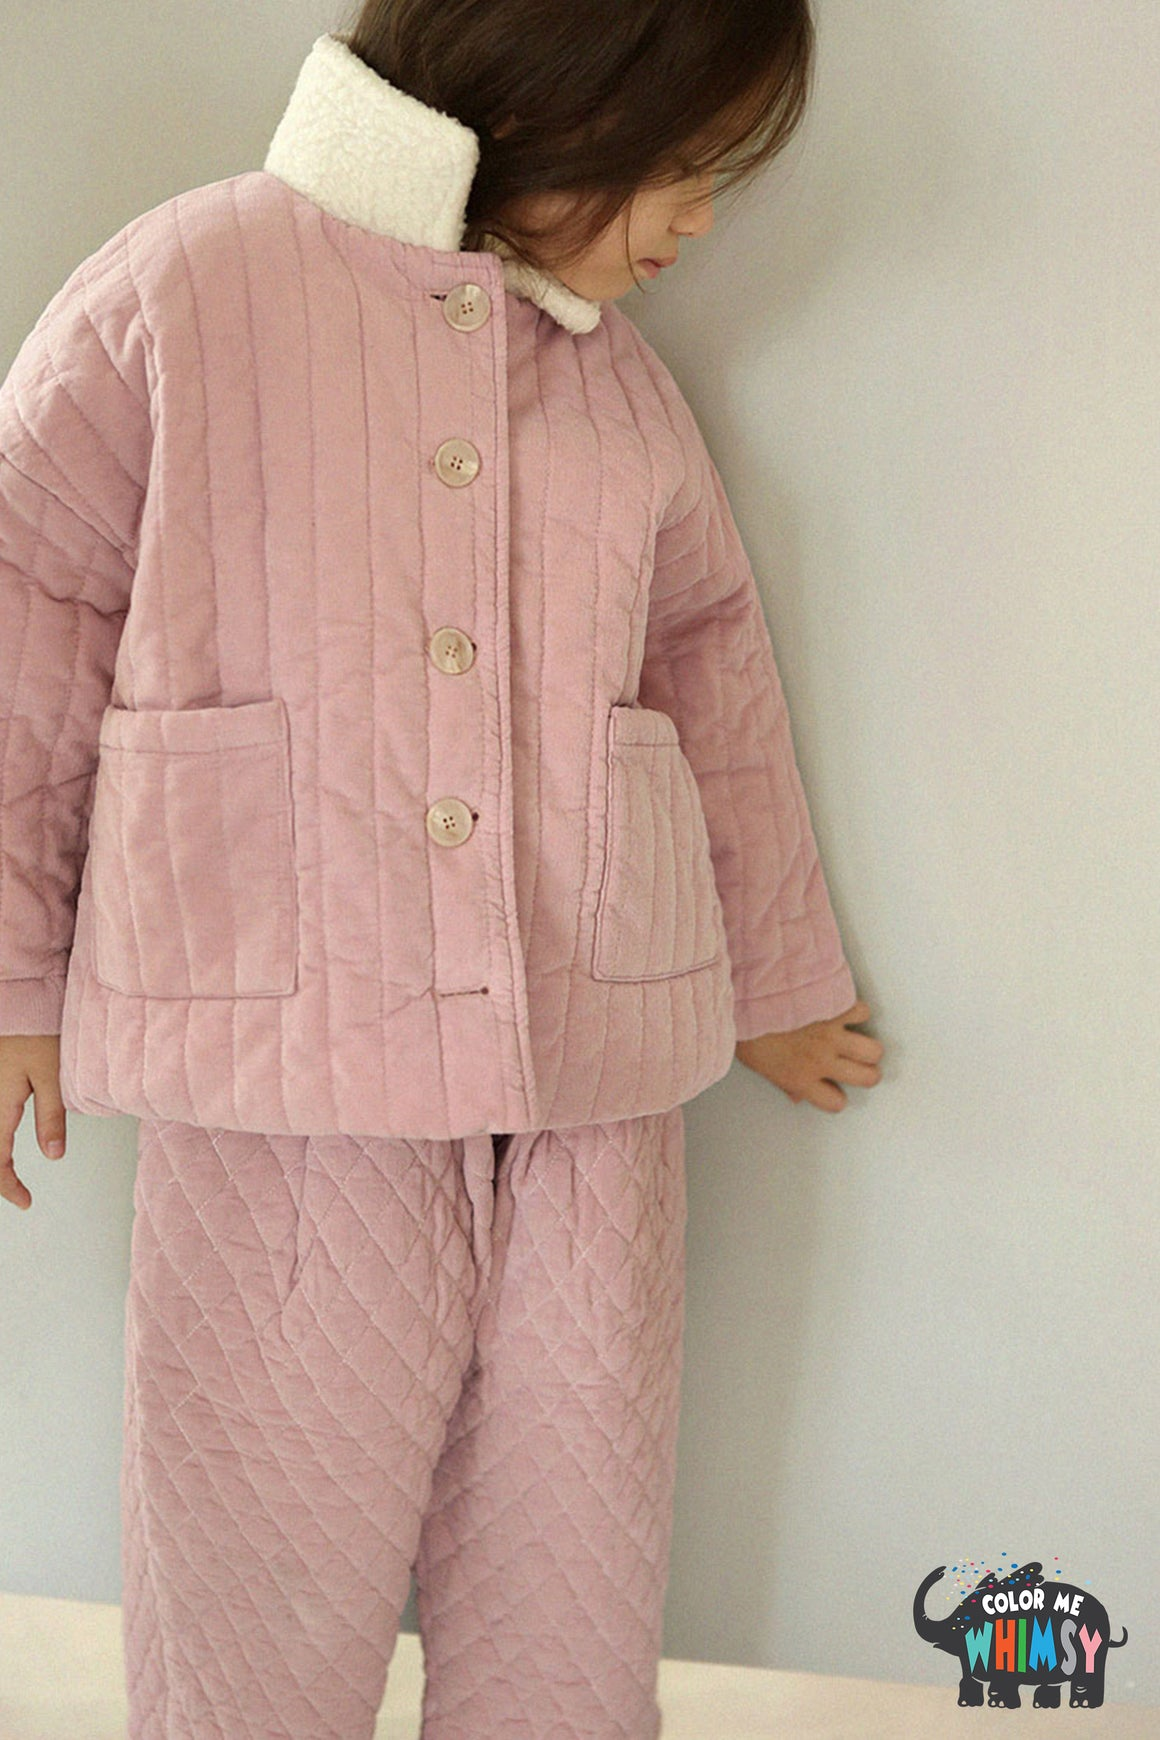 SCON Kale Quilt Jacket at Color Me WHIMSY Hip Kid's Fashion Ethically Made in South Korea